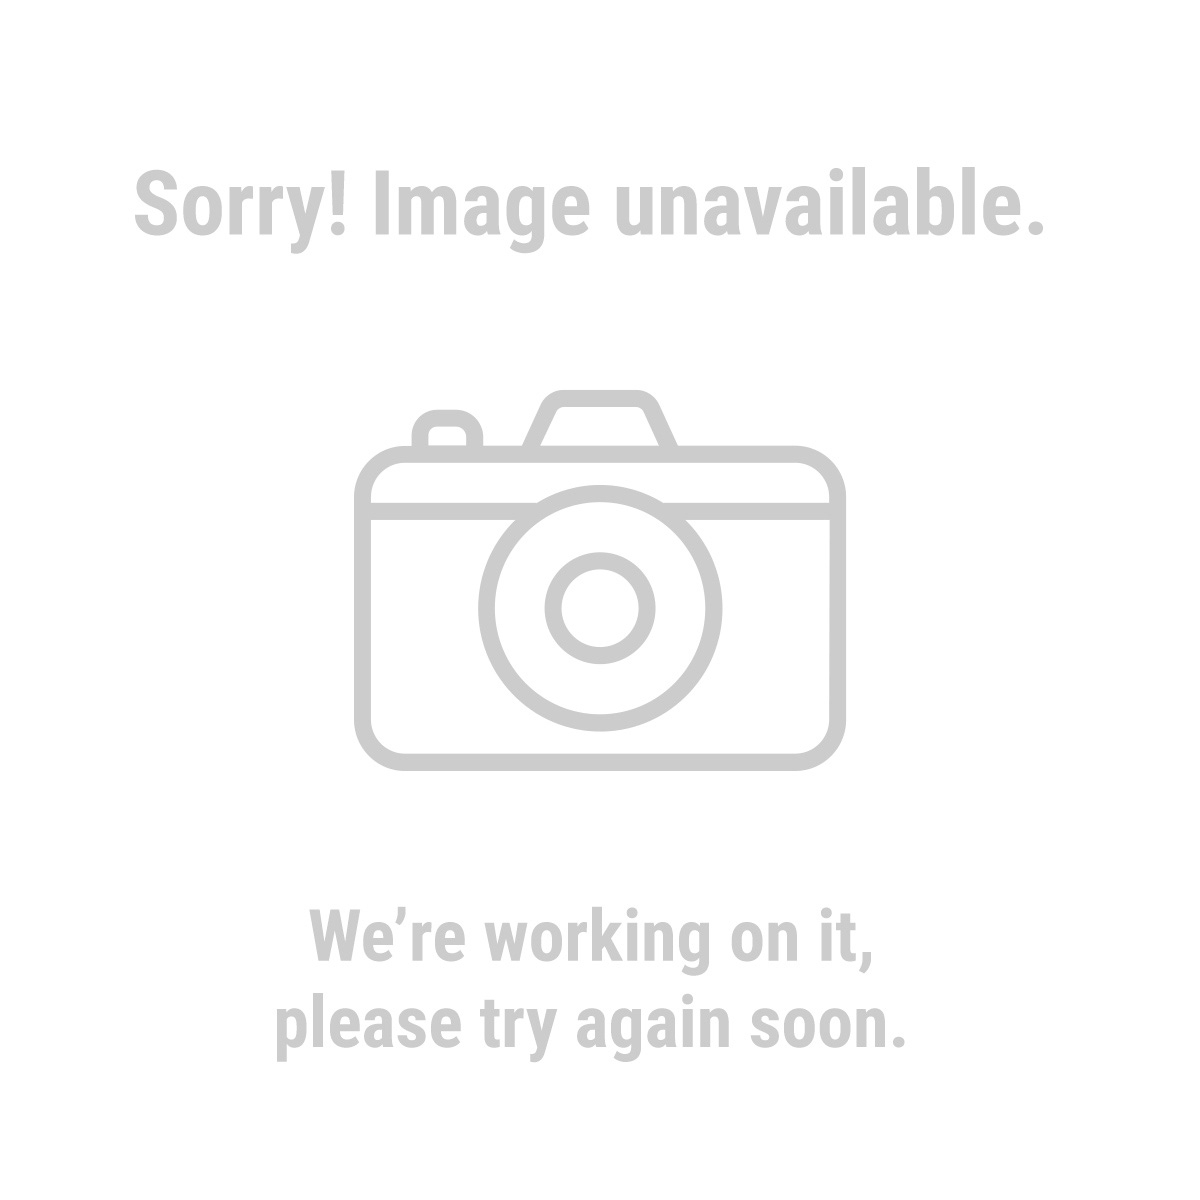 Chicago Electric inch Sliding Compound Miter Saw Build Quality. Grabbing a miter saw is simple. Choosing a good compound miter saw is a bit harder.